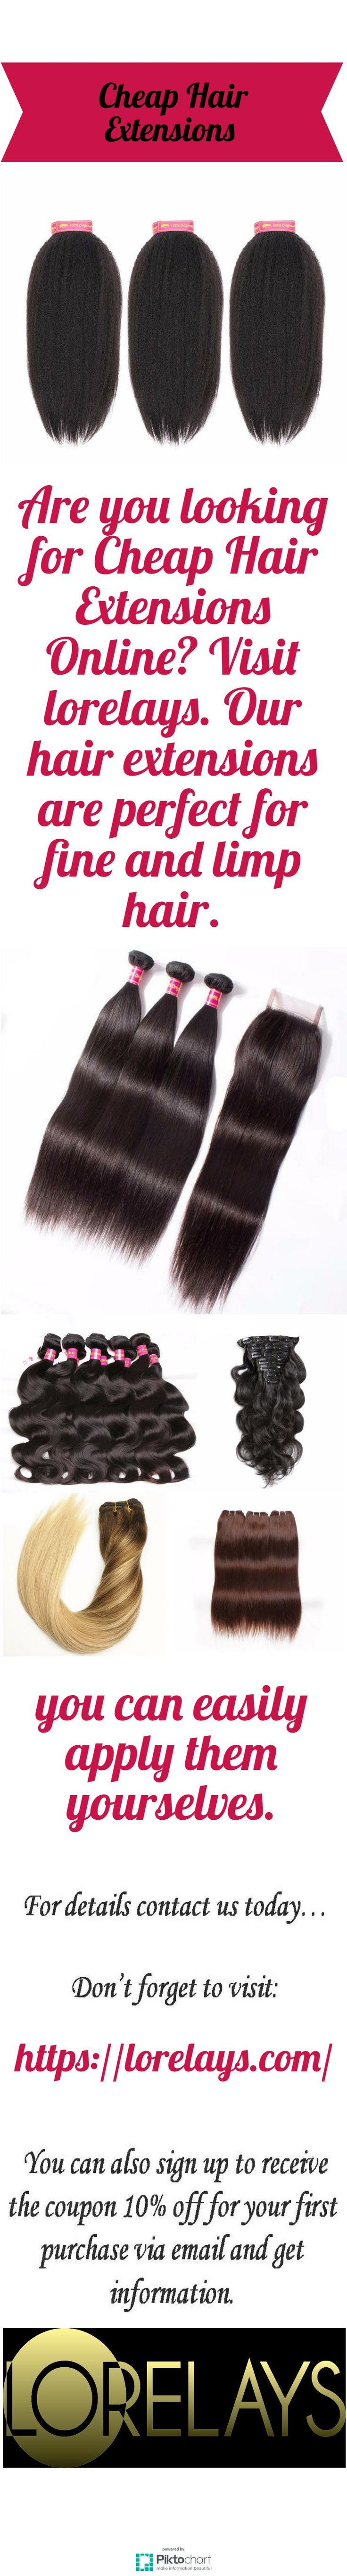 Are you looking for Cheap Hair Extensions Online? Visit lorelays. Our hair extensions are perfect for fine and limp hair. Moreover, you can easily apply them yourselves. Visit website for details.  https://lorelays.com/